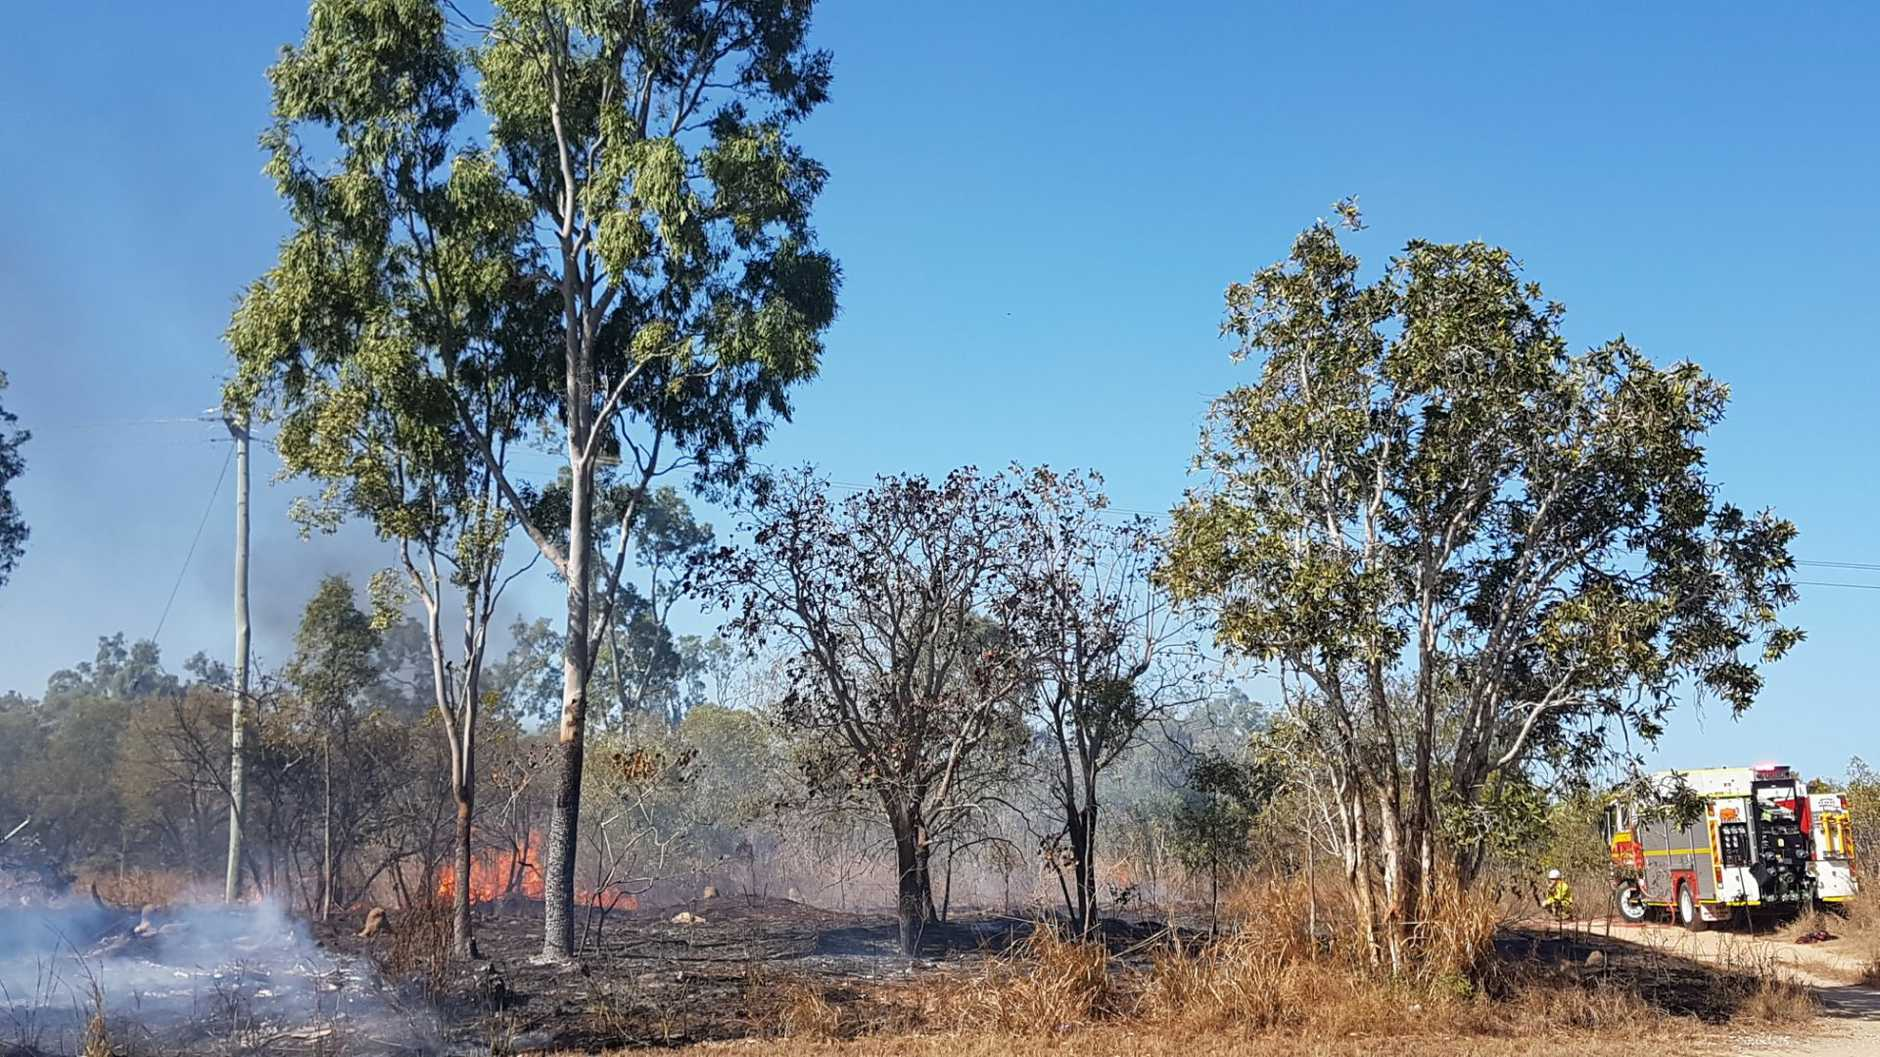 A bushfire seven kilometres south of Bowen has closed one lane of traffic on the Bruce Highway.